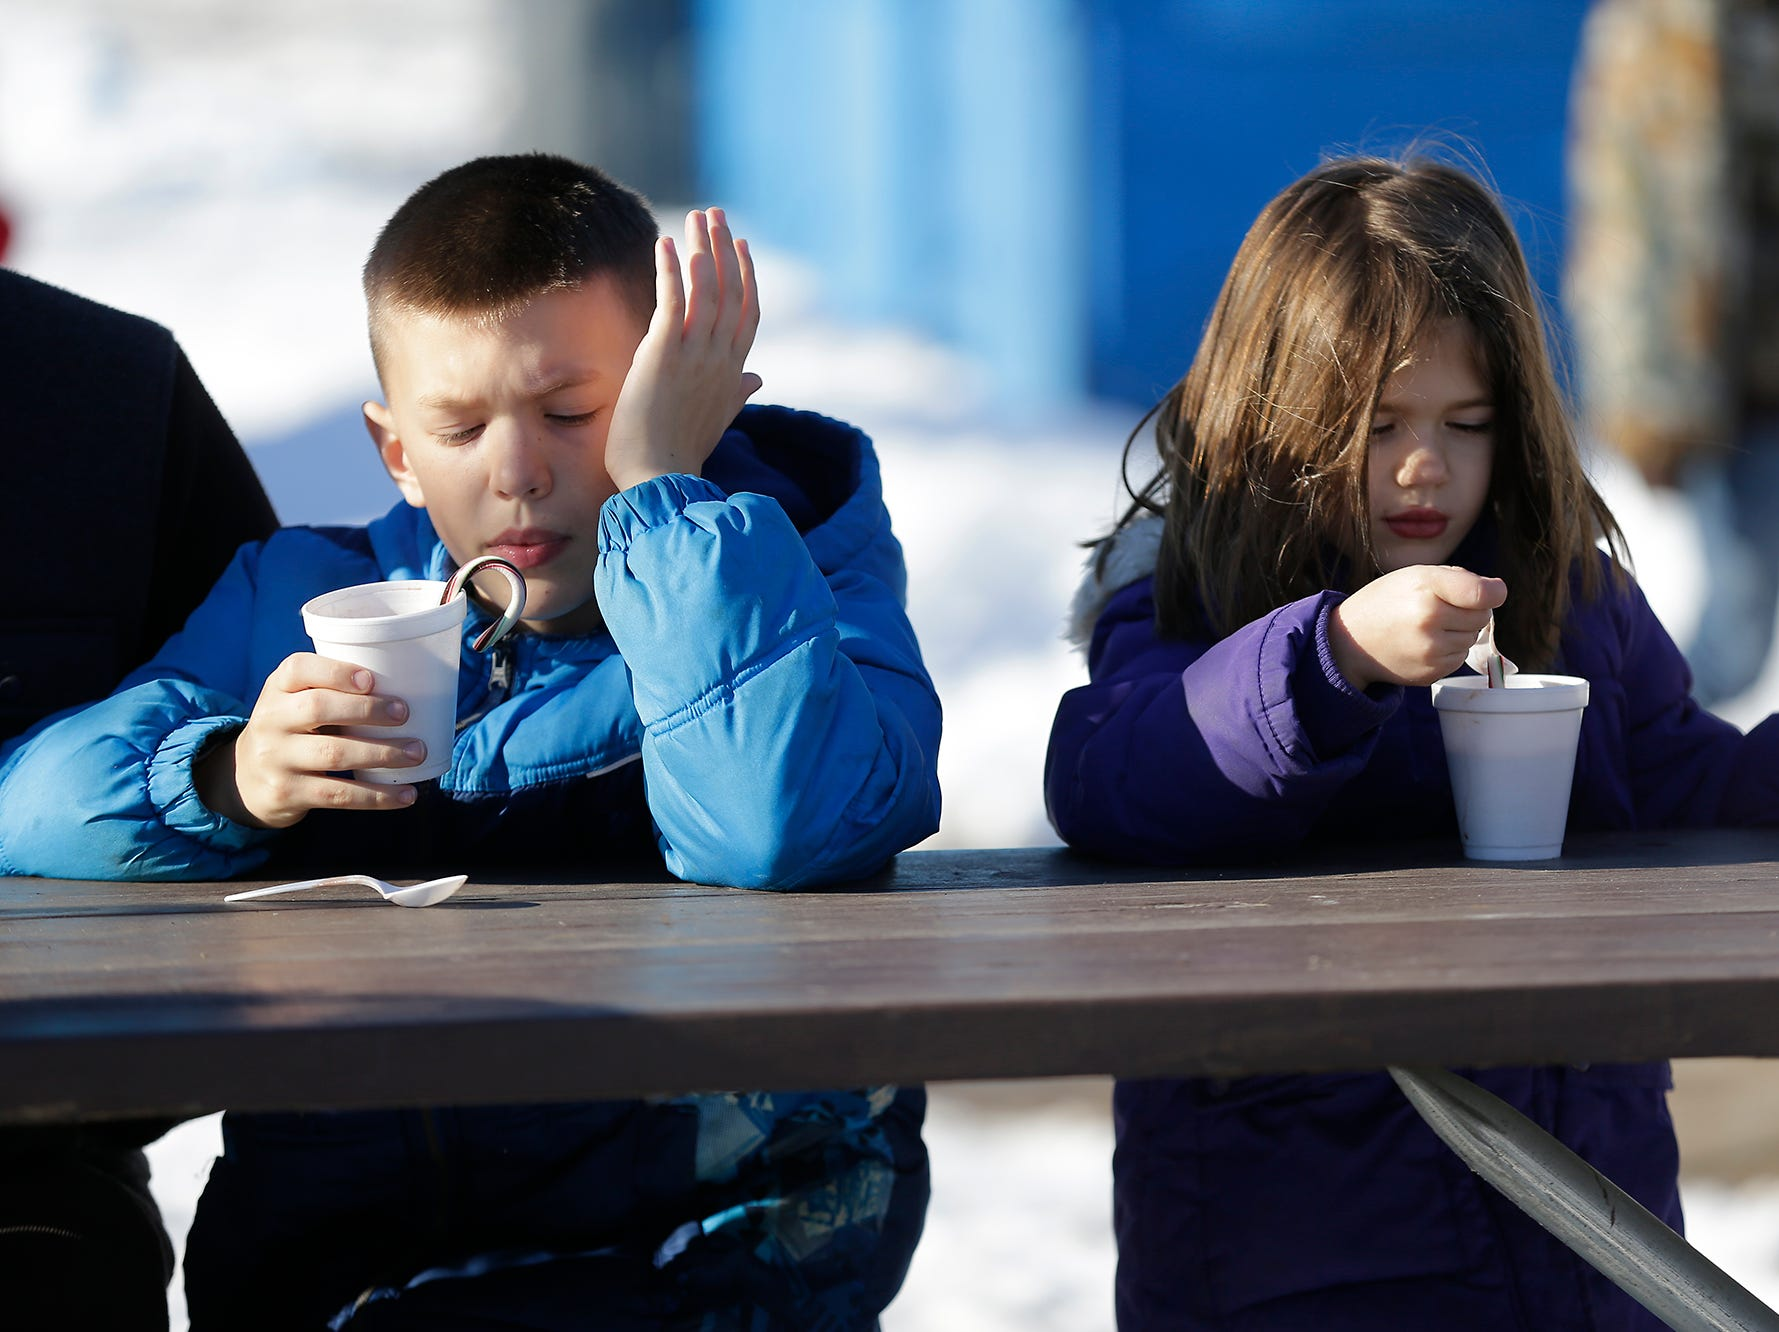 Jonas and Emie Parsons drink hot chocolate at Winterfest Saturday, January 5, 2019 at Hamilton park in Fond du Lac, Wisconsin. Doug Raflik/USA TODAY NETWORK-Wisconsin